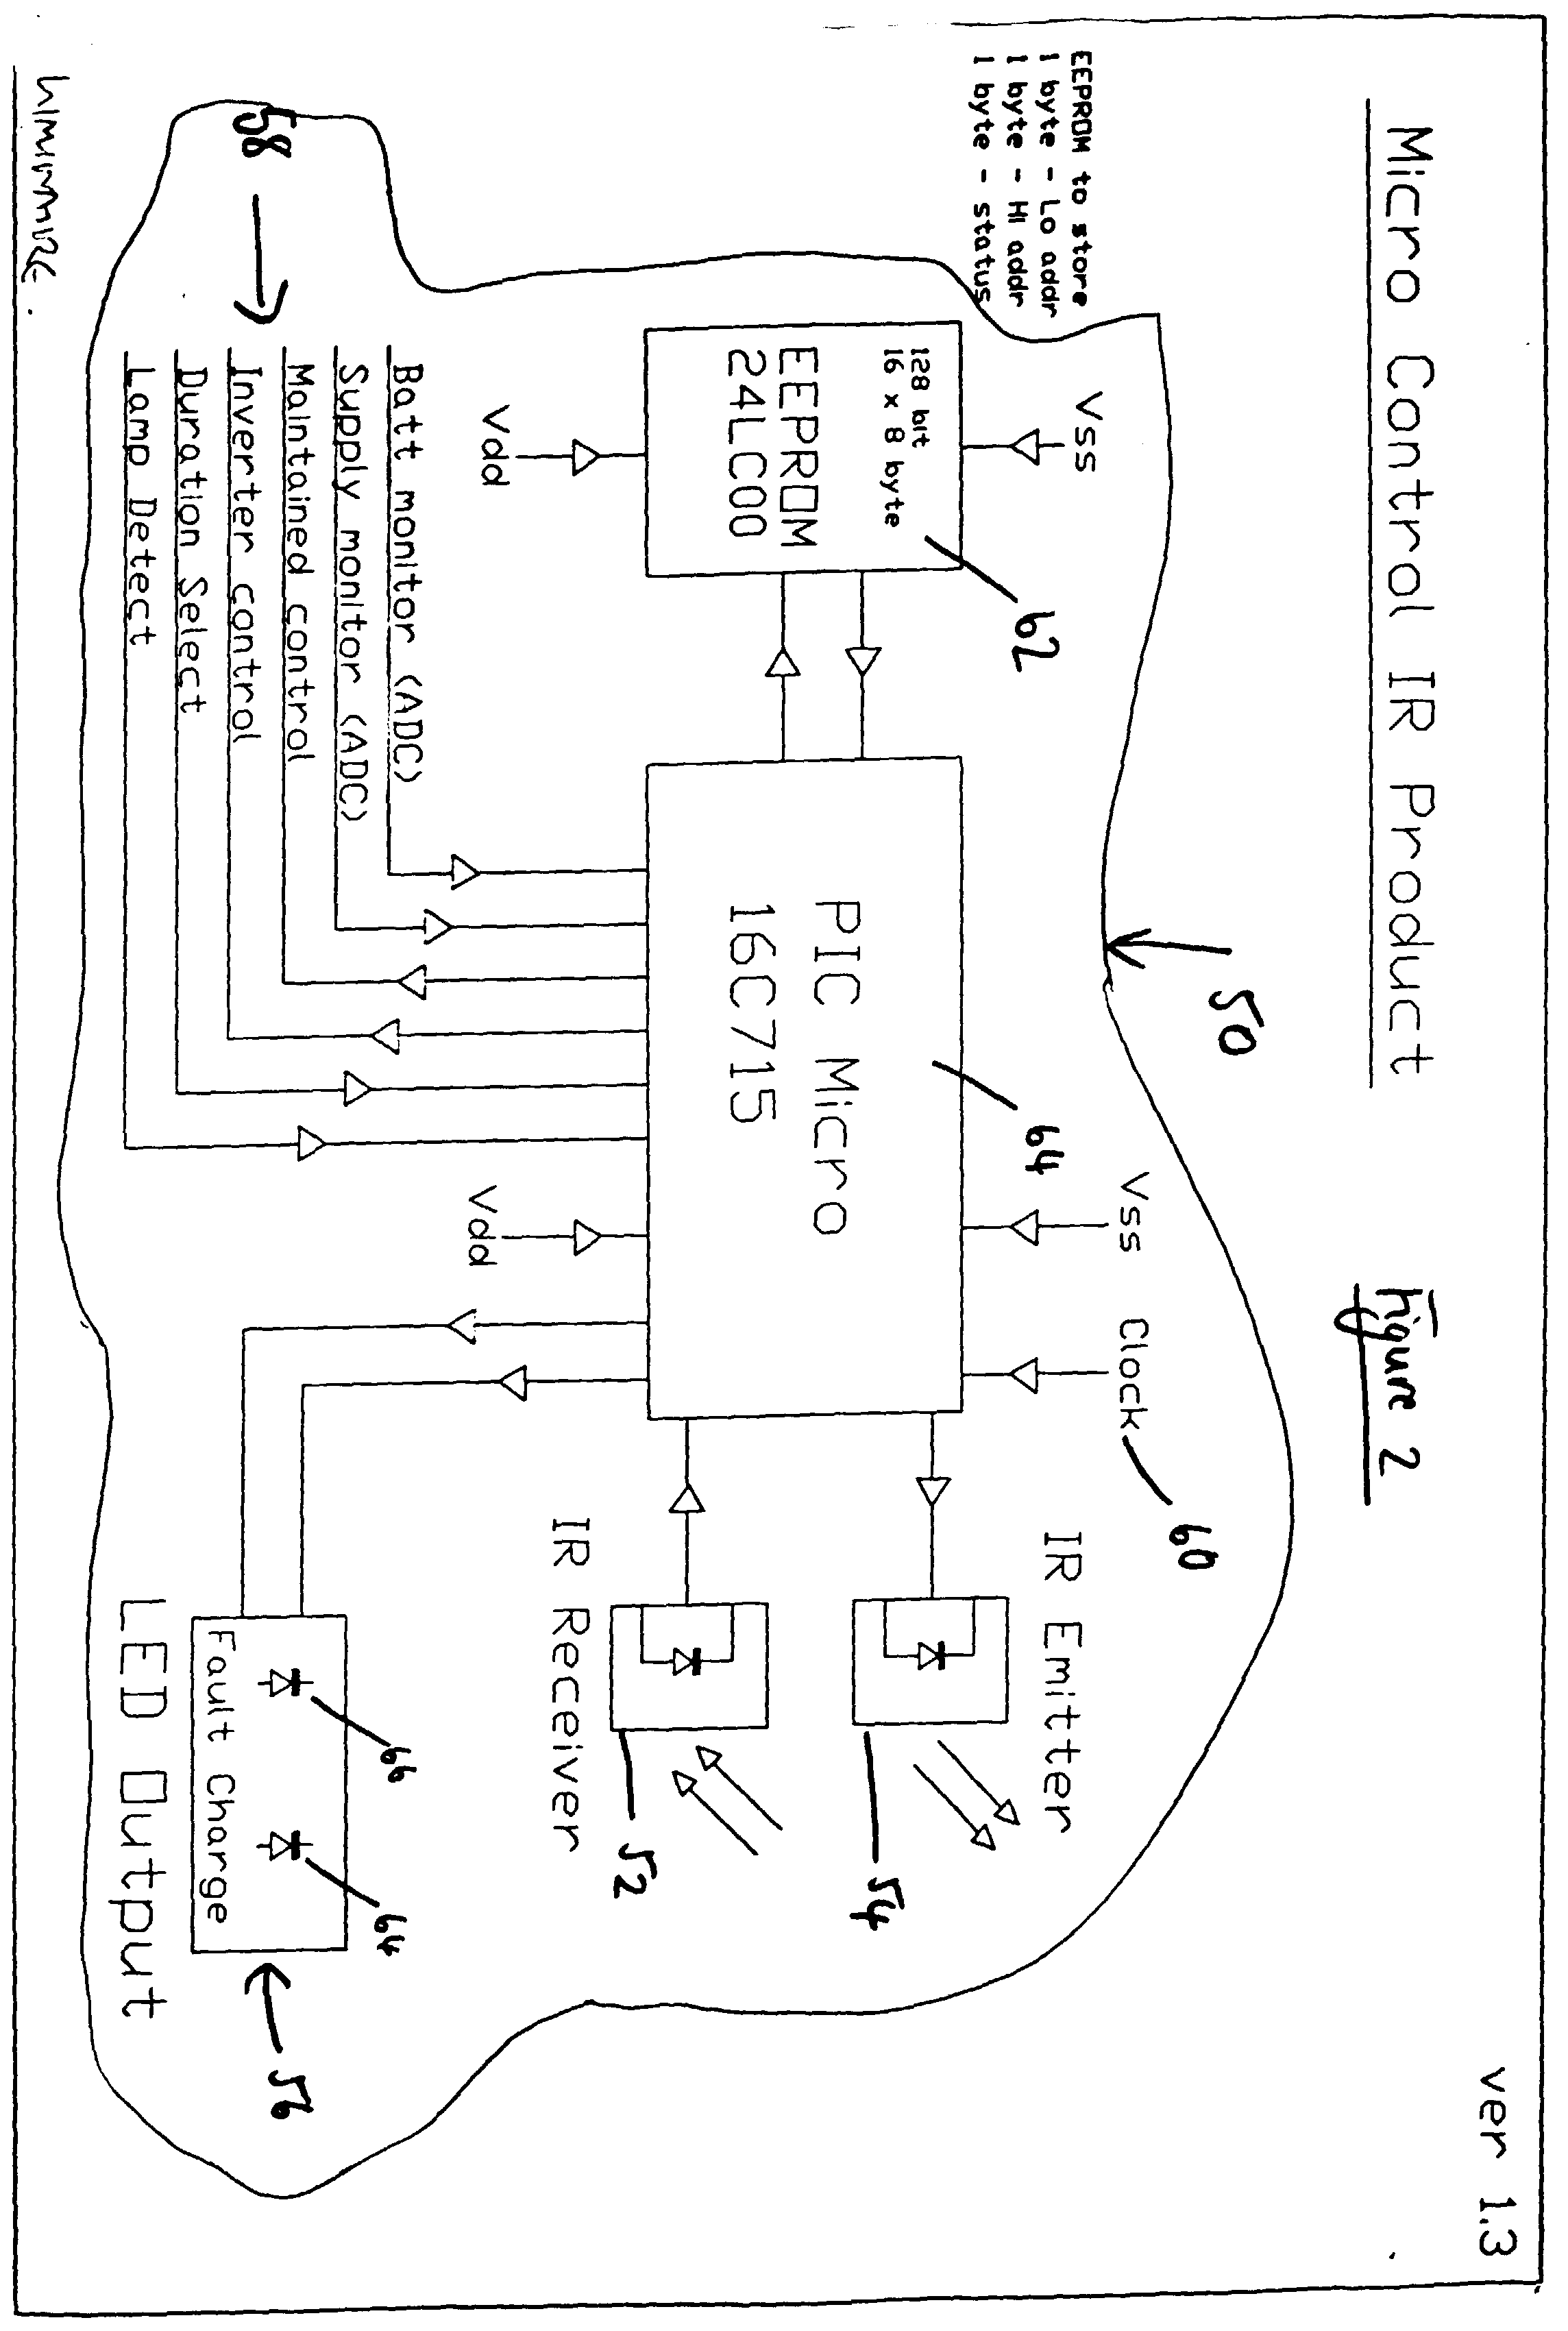 Emergency Light Wiring Diagram Non Maintained Lighting Diagrams Excellent Ideas